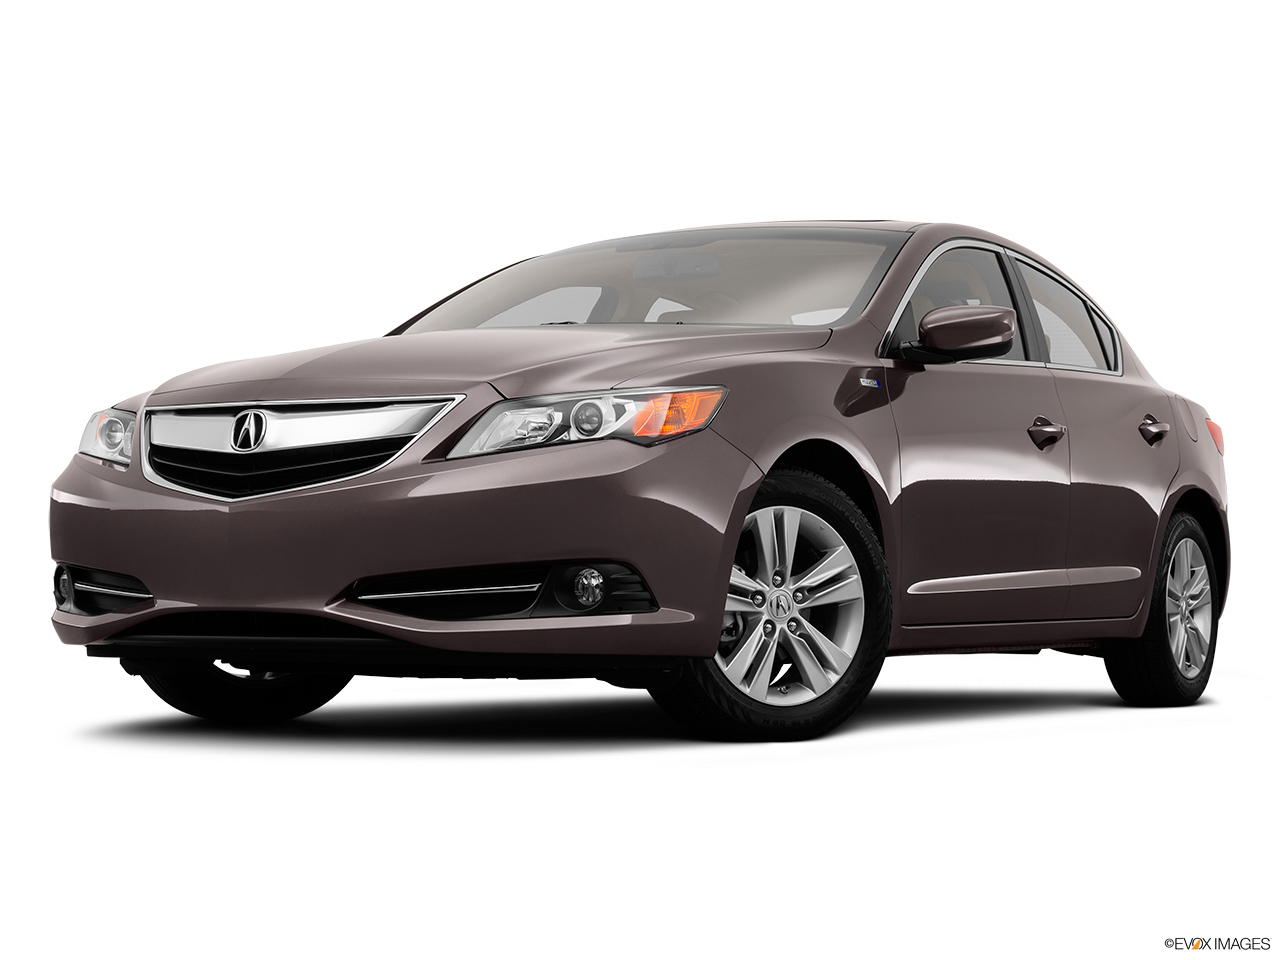 2014 Acura ILX Hybrid Base Front angle view, low wide perspective.